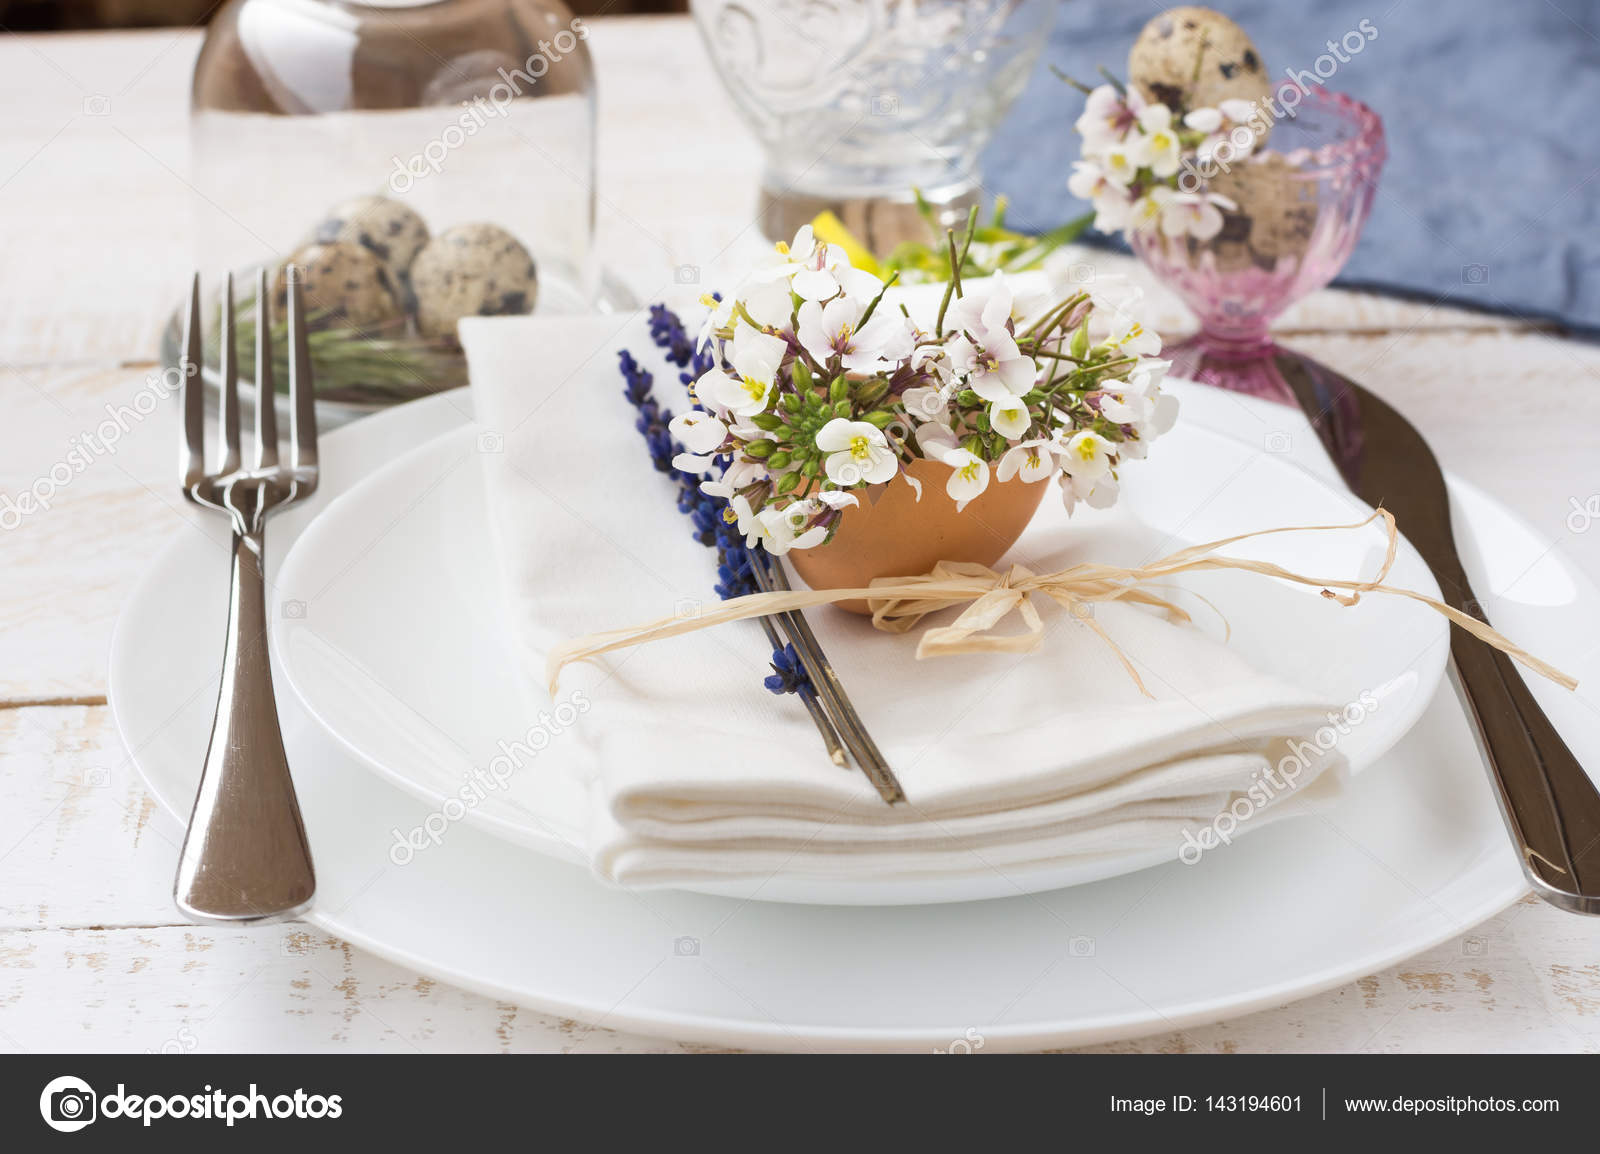 Romantic wedding table setting lavender white plates napkin flowers in eggshell Easter decoration outdoors kinfolk u2014 Photo by olindana & Romantic wedding table setting lavender white plates napkin ...